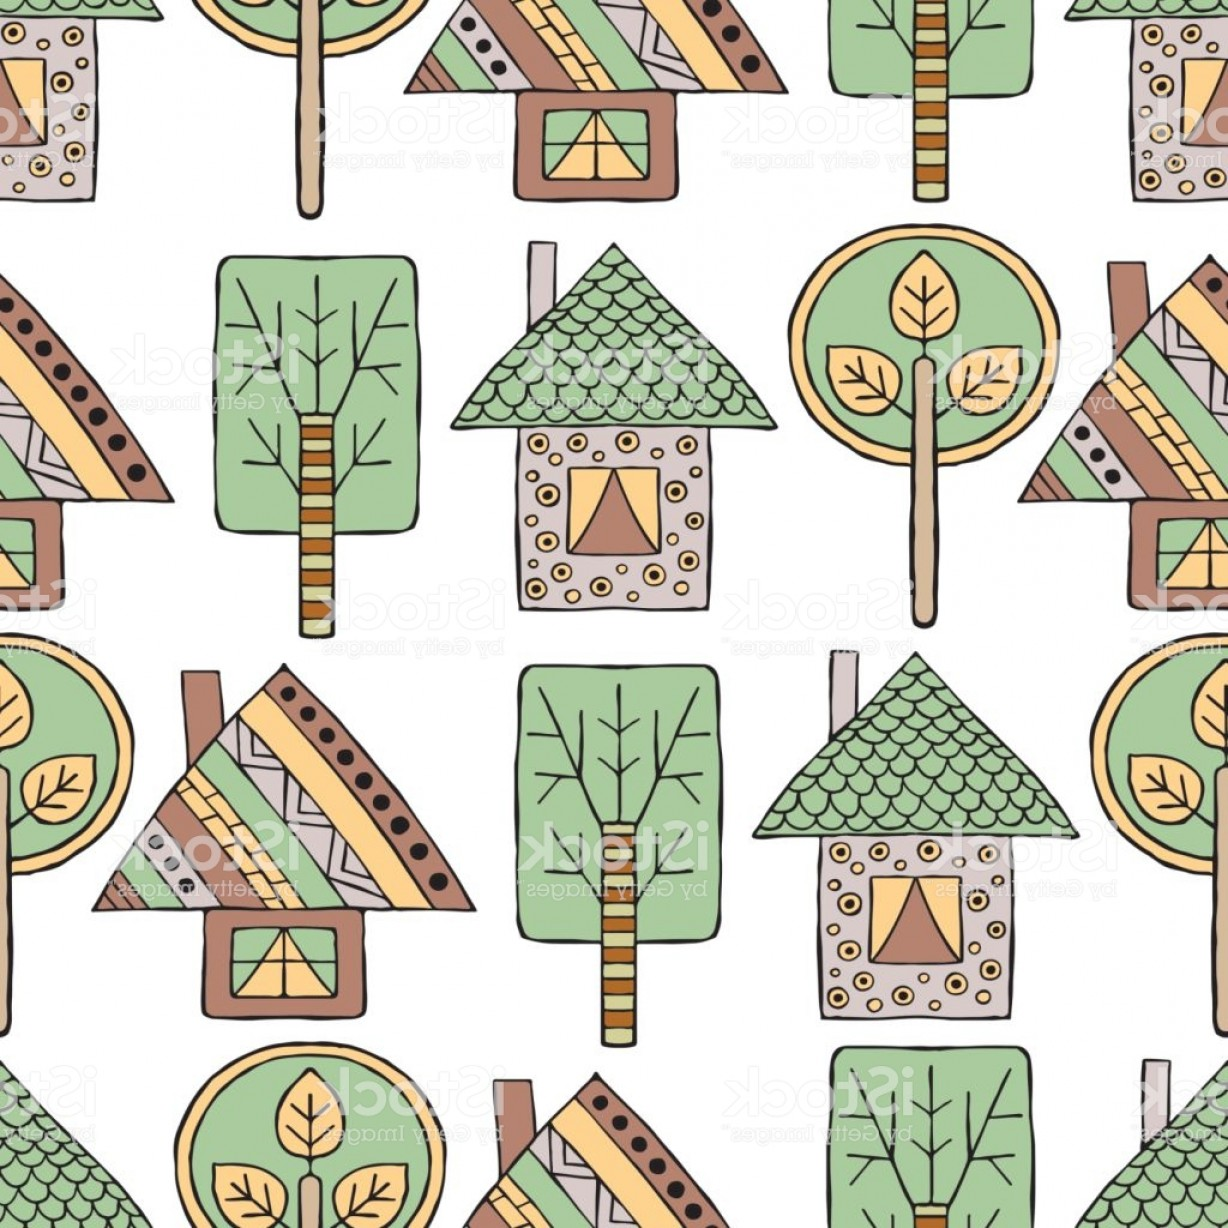 Tribal Vector Art Trees: Vector Hand Drawn Seamless Pattern Decorative Stylized Childish Trees House Doodle Gm